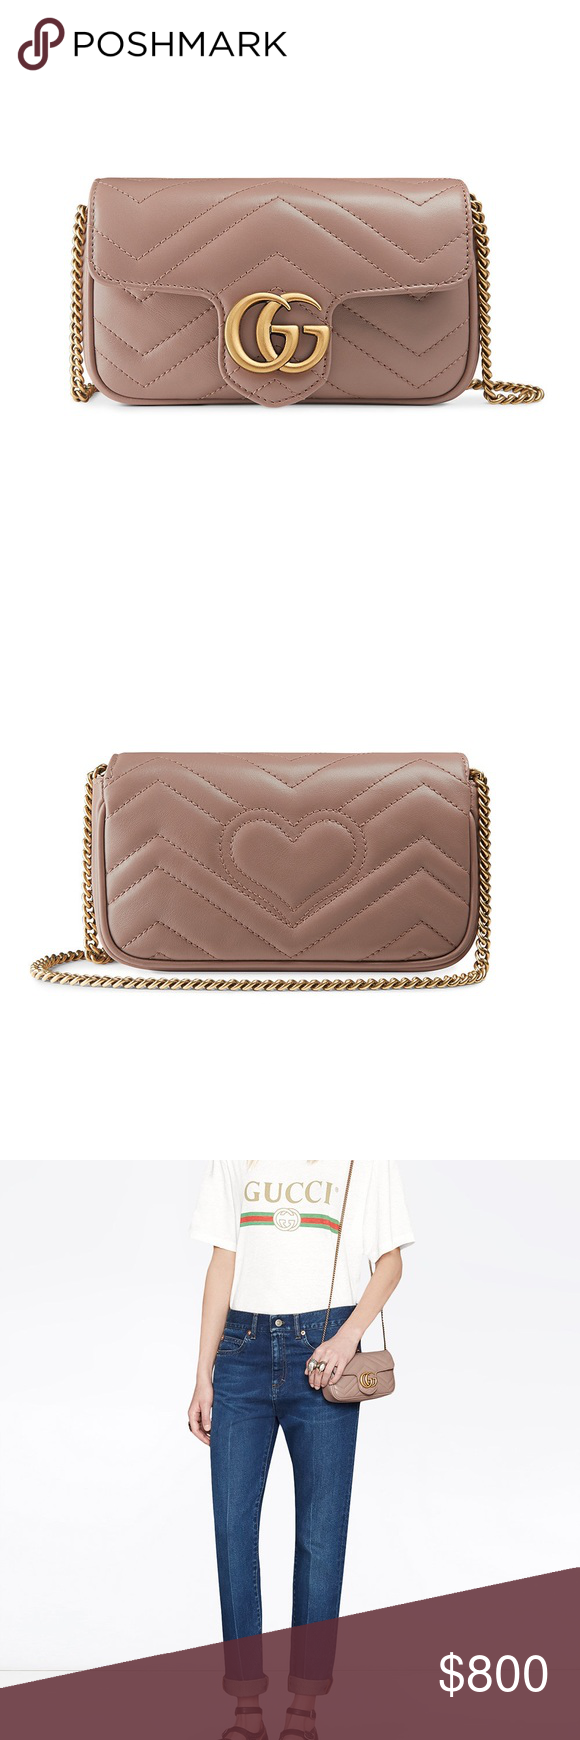 911d70249eec Looking for Gucci Marmont Matelasse Super Mini Bag Looking for new or  pre-loved Gucci Marmont Matelasse Super Mini Bag in nude color. Gucci Bags  Mini Bags